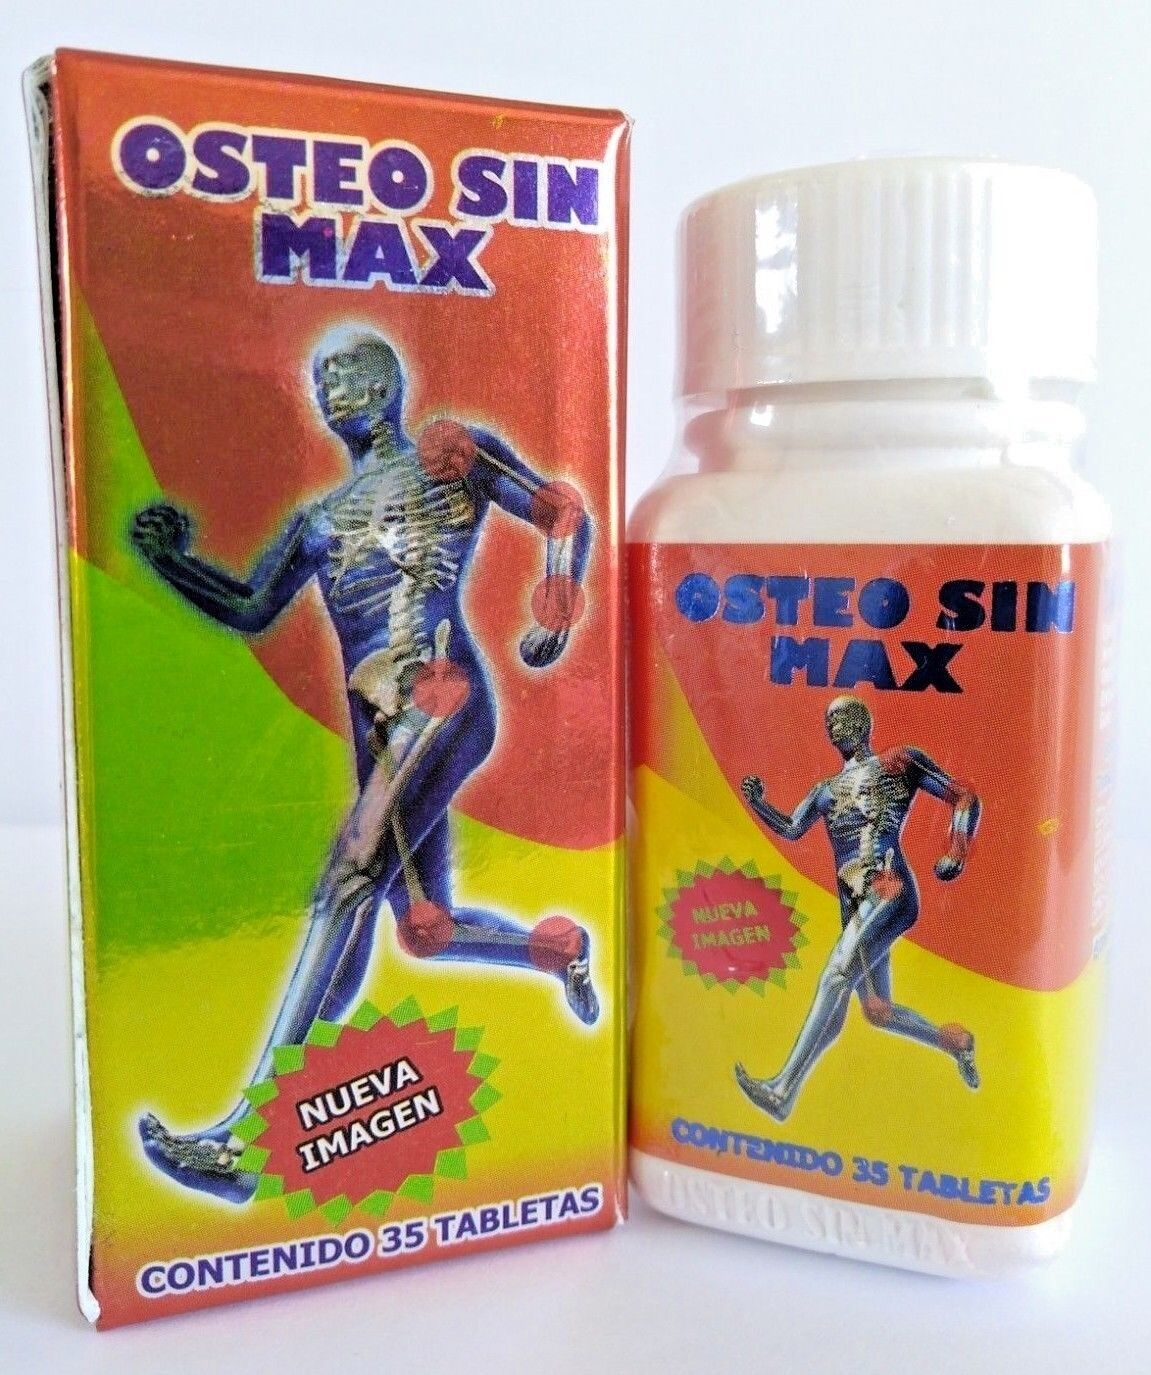 OSTEO SIN MAX 100% ORIGINAL ARTHRITIS JOINT PAIN ARTRITIS OSTEOPOROSIS AUTHENTIC